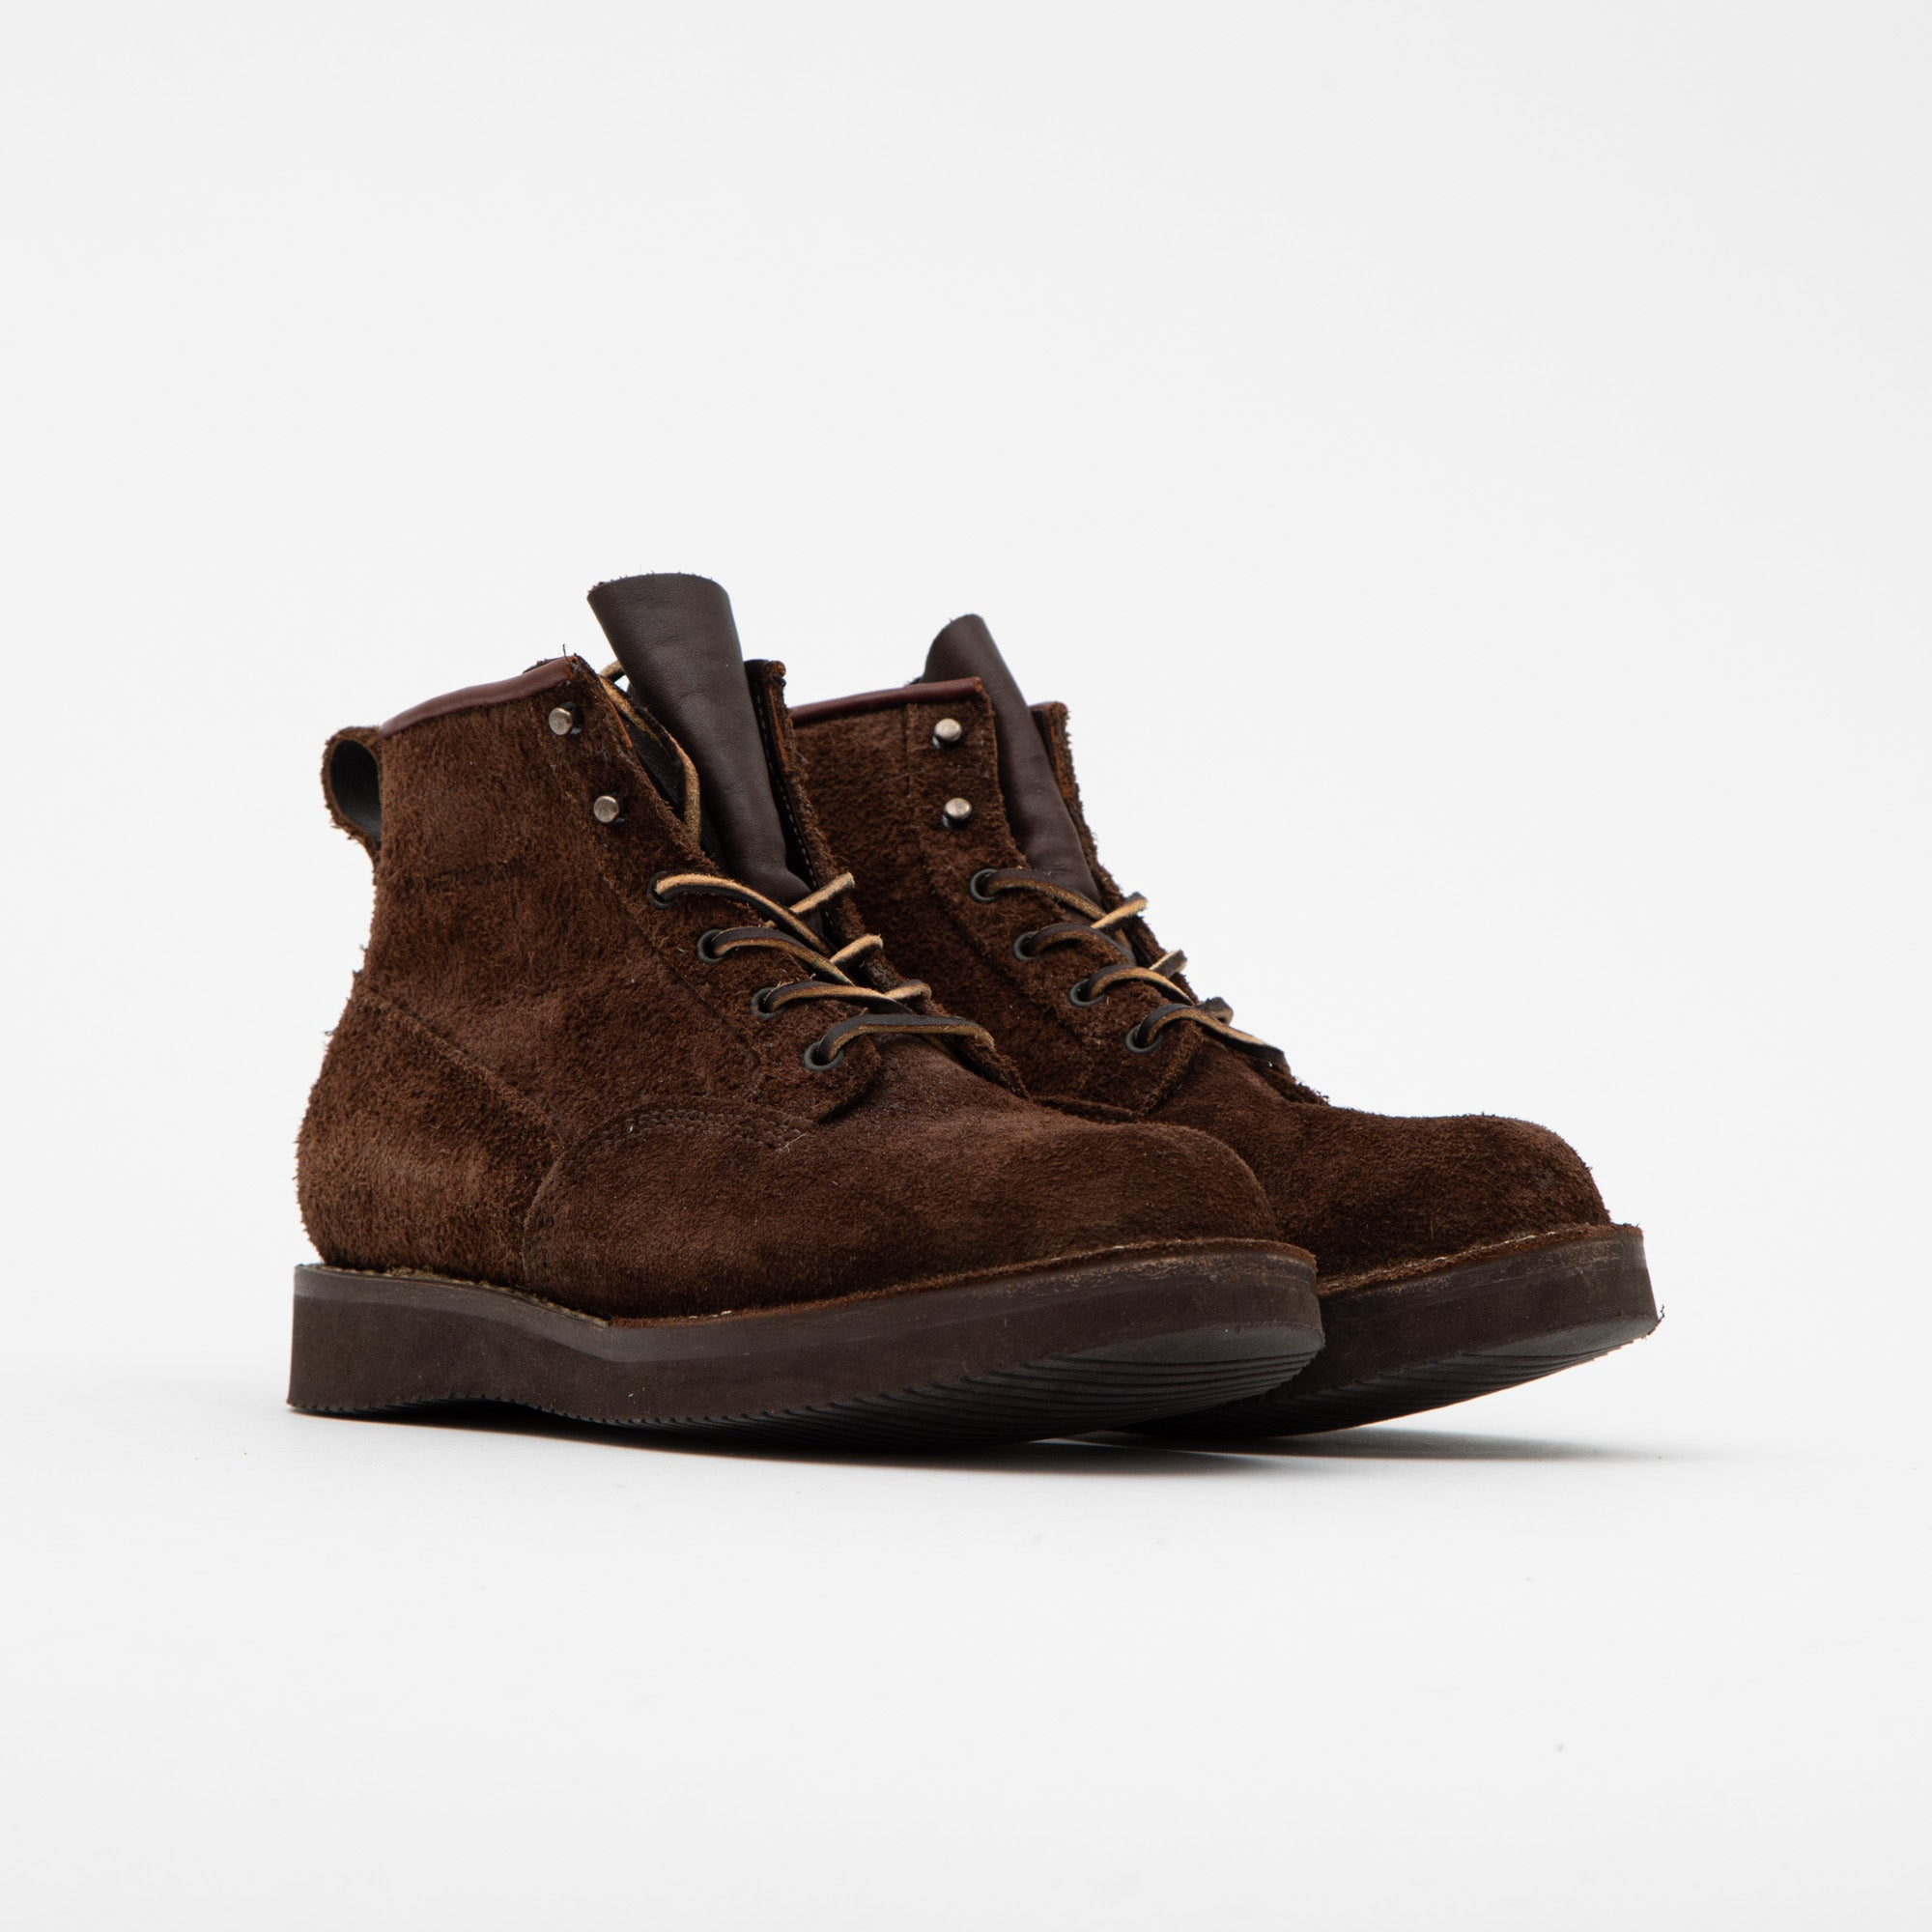 Viberg Boot x The New Order Rough-Out Leather Scout Boot